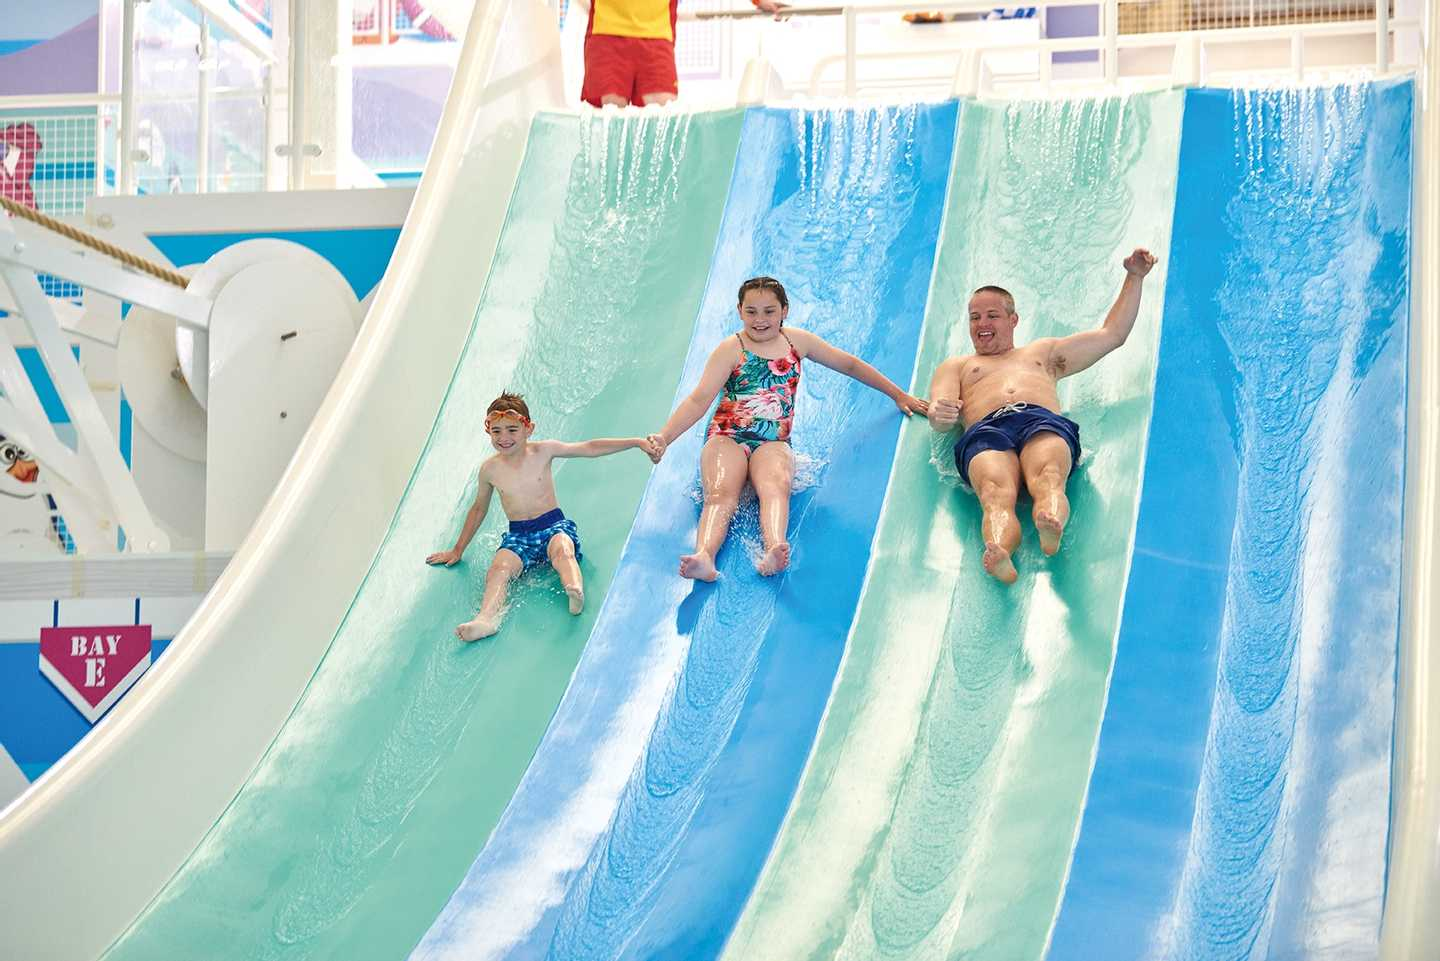 Family whizzing down the water flume in the heated indoor pool